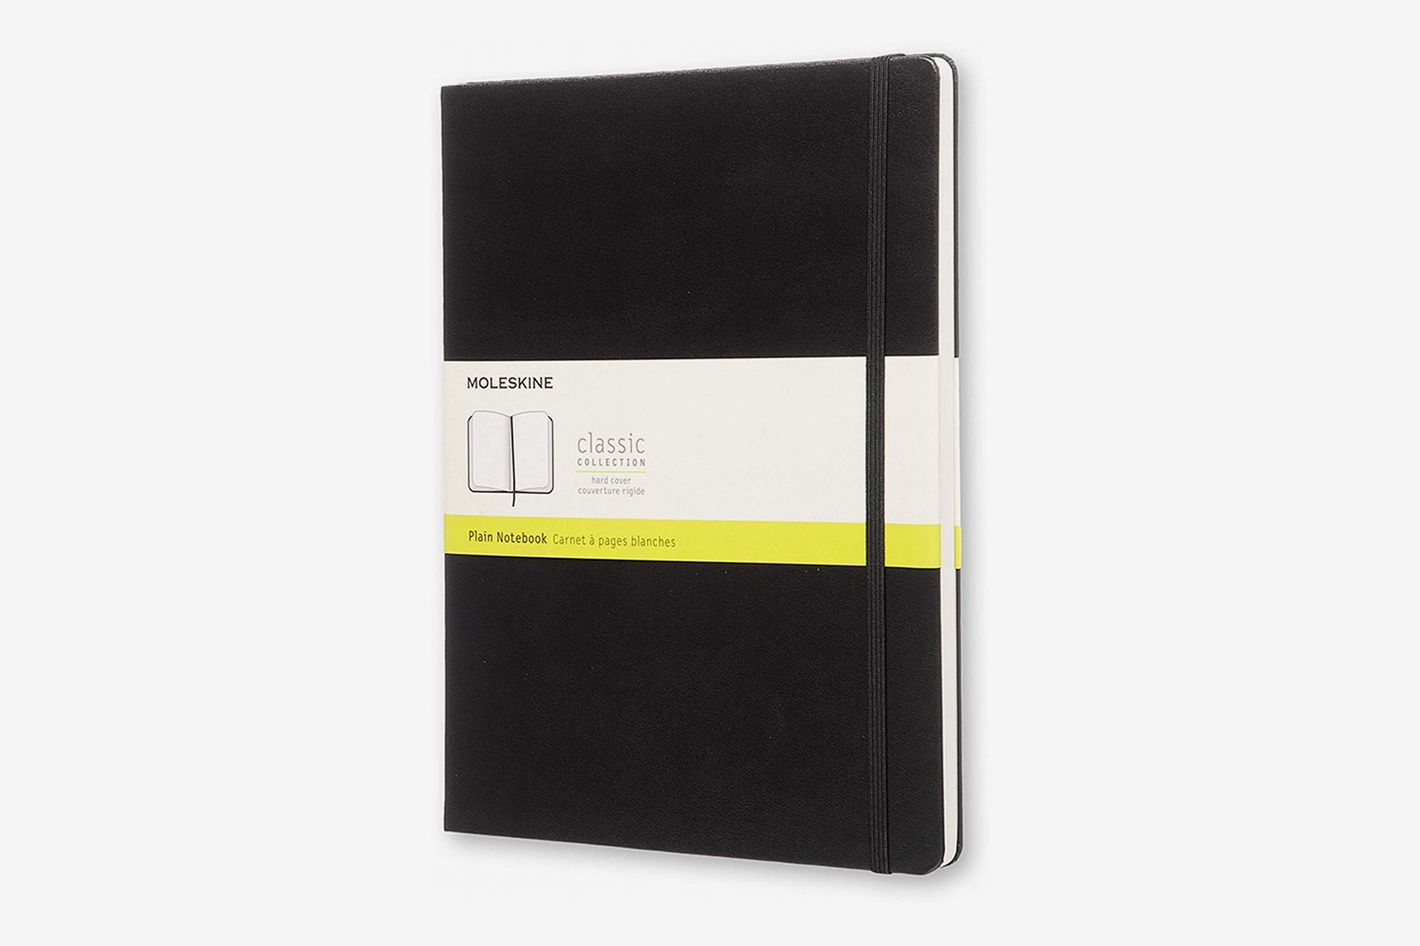 Moleskine Classic Notebook Hard Cover, XL